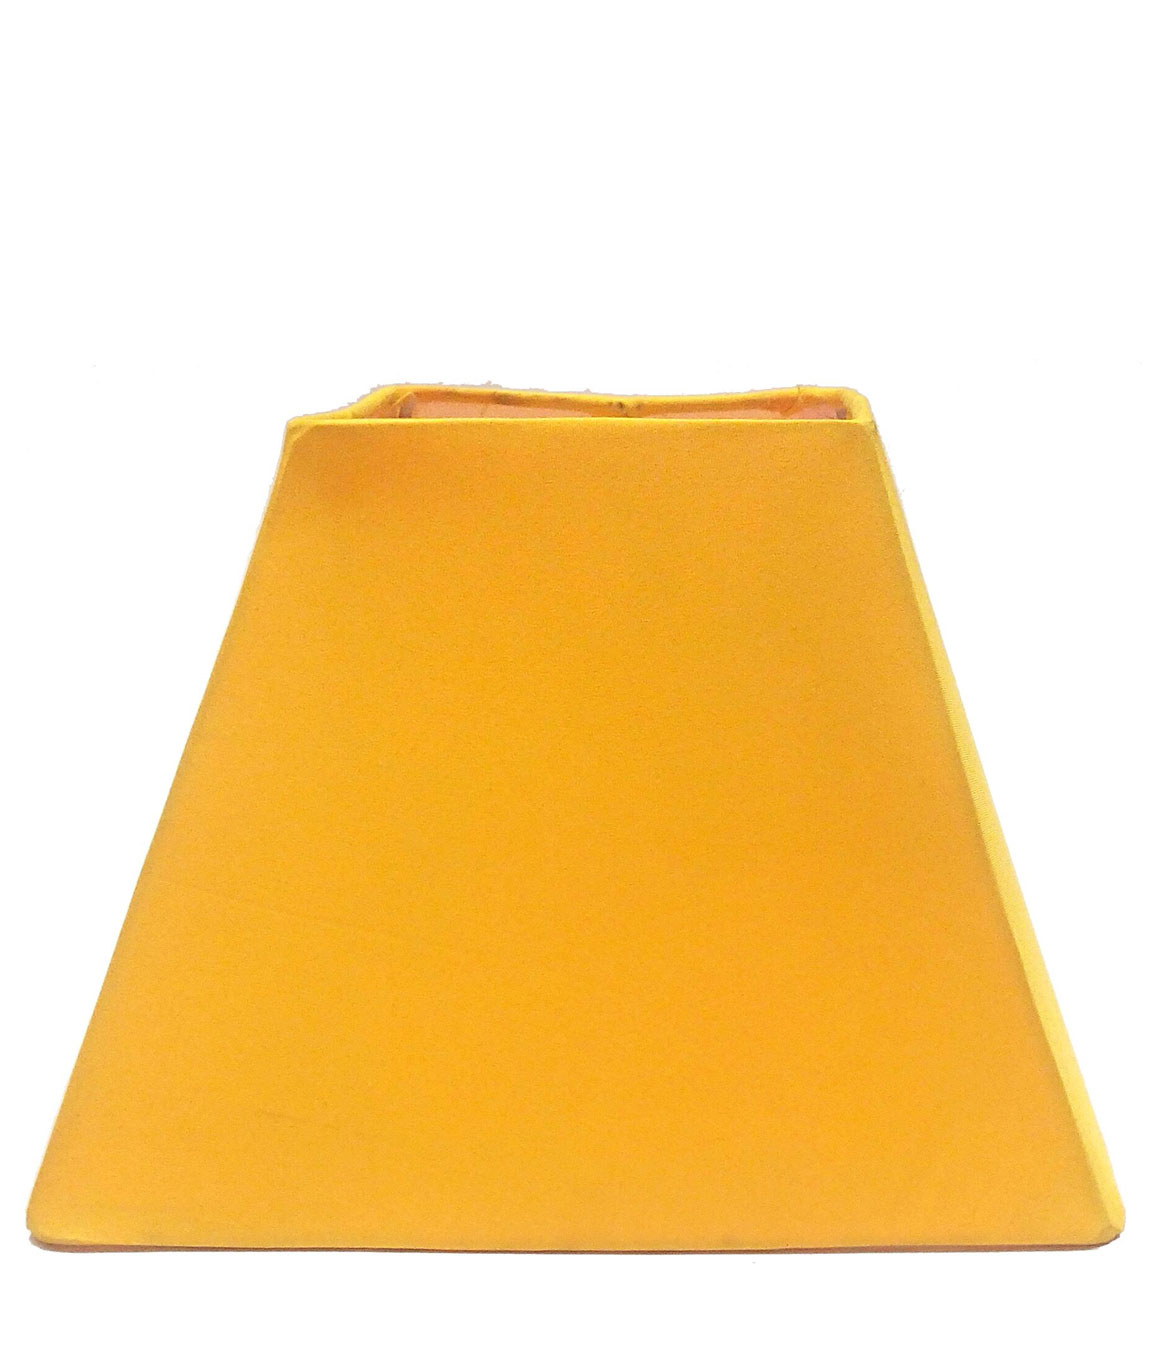 RDC 8 Inches Square Plain Yellow Lamp Shade for Table Lamp